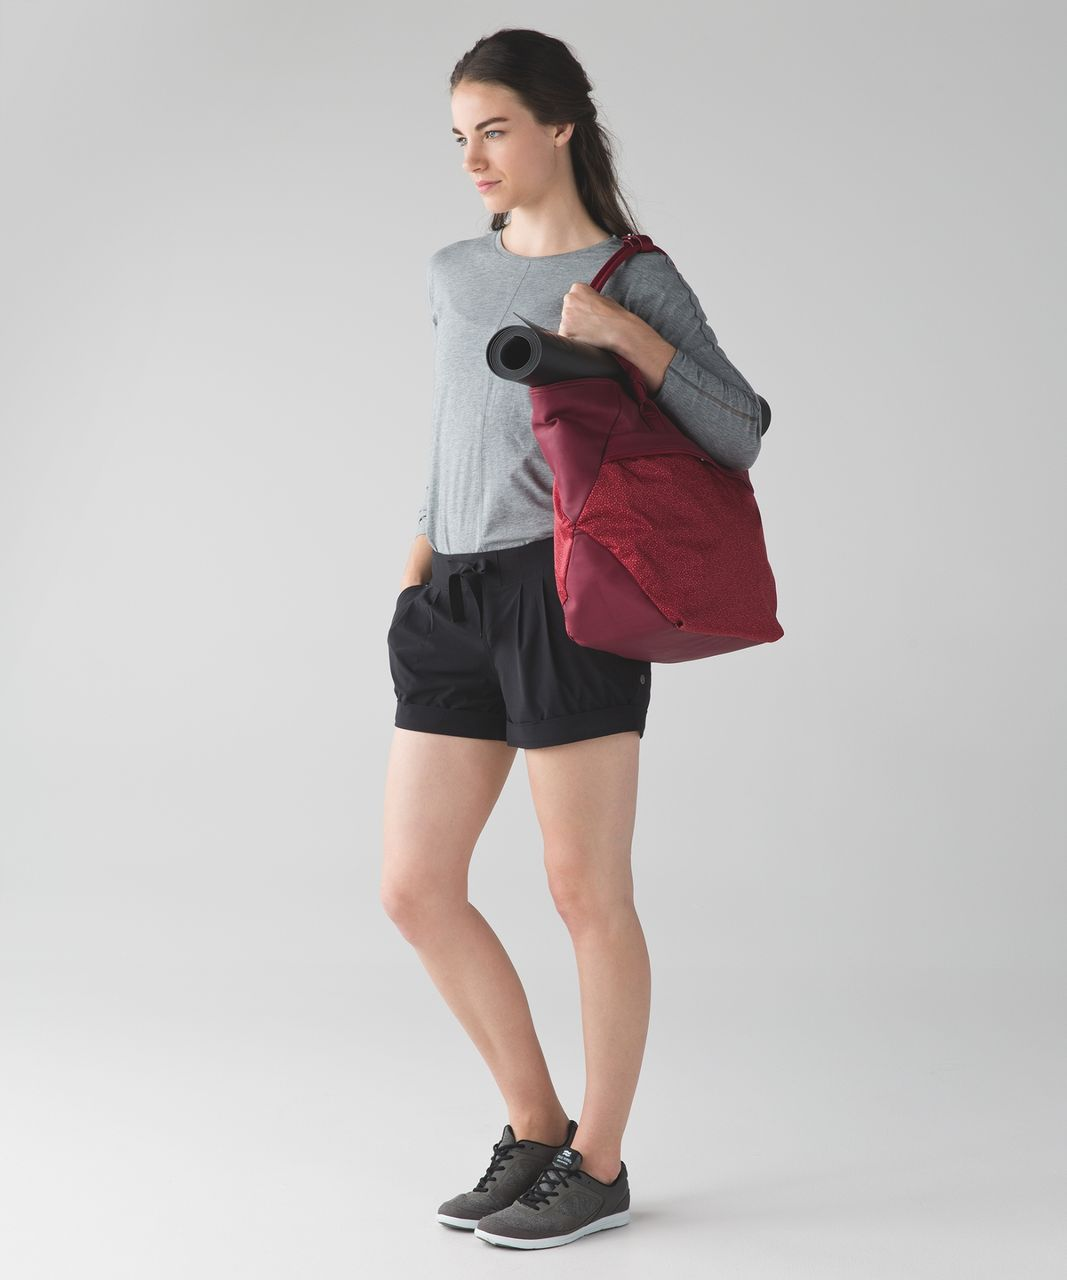 Lululemon Everything Bag - Rosewood / Freckle Flower Fireside Red Rosewood